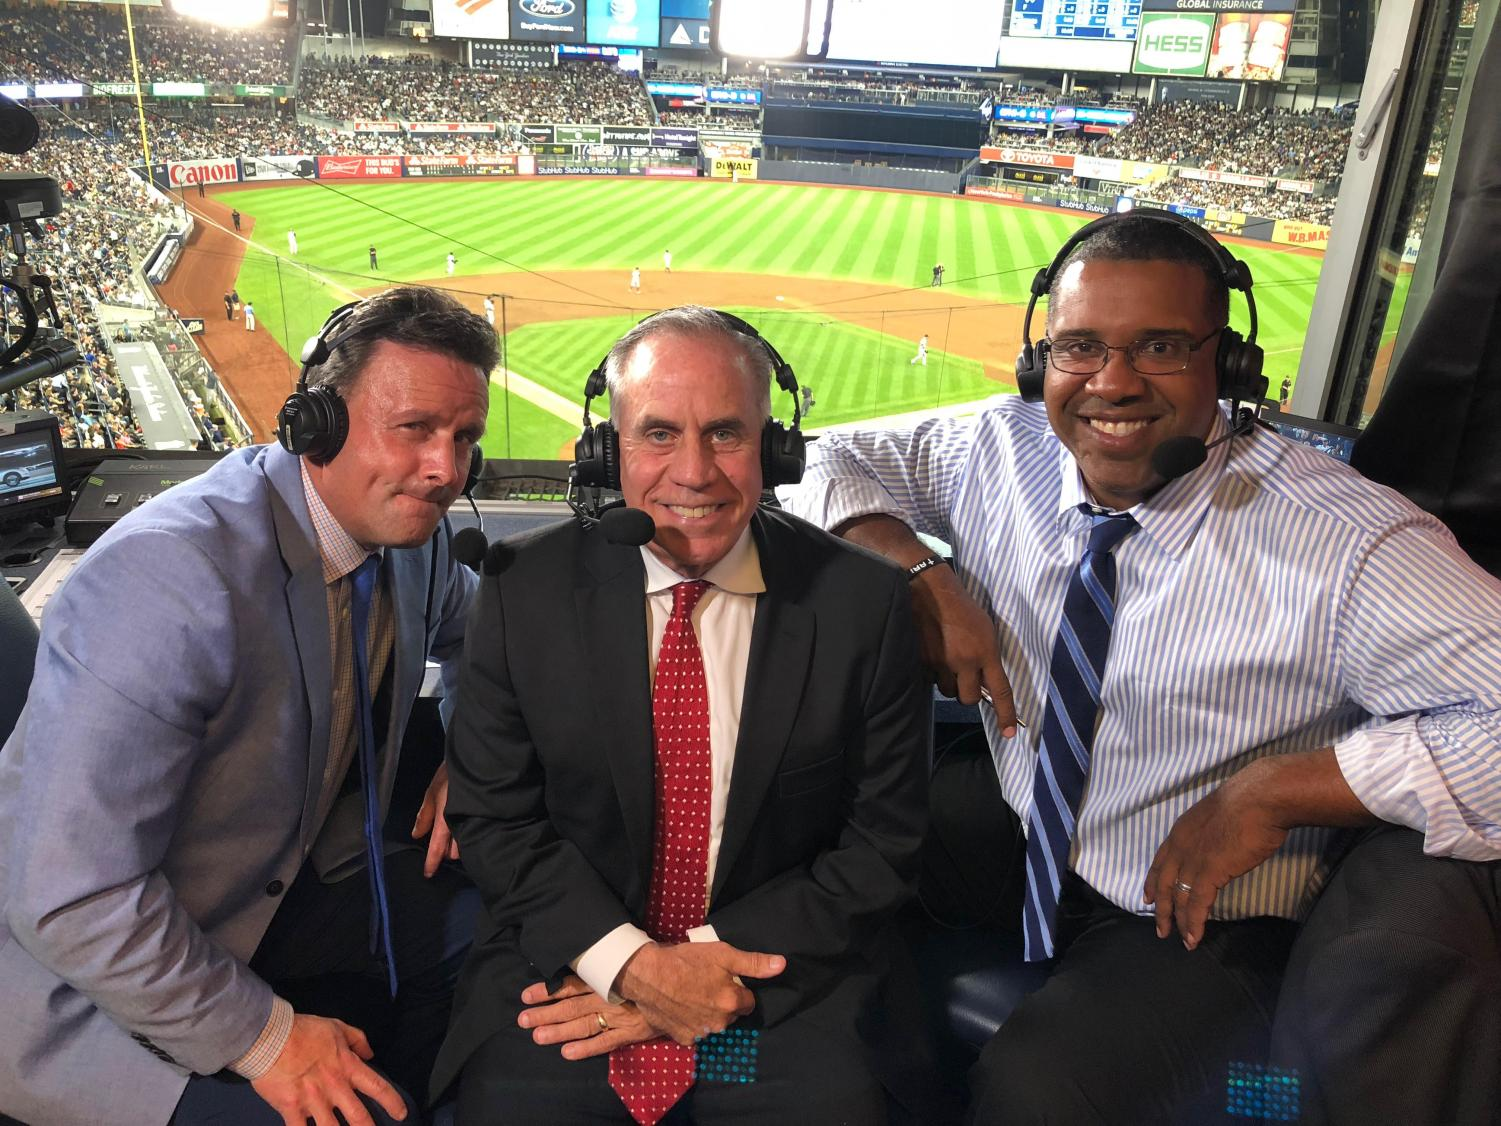 Kurkjian (center) called the September 19 Boston Red Sox vs. New York Yankees game on ESPN. Kurkjian, who graduated from WJ in 1974, has worked for ESPN since 1998.